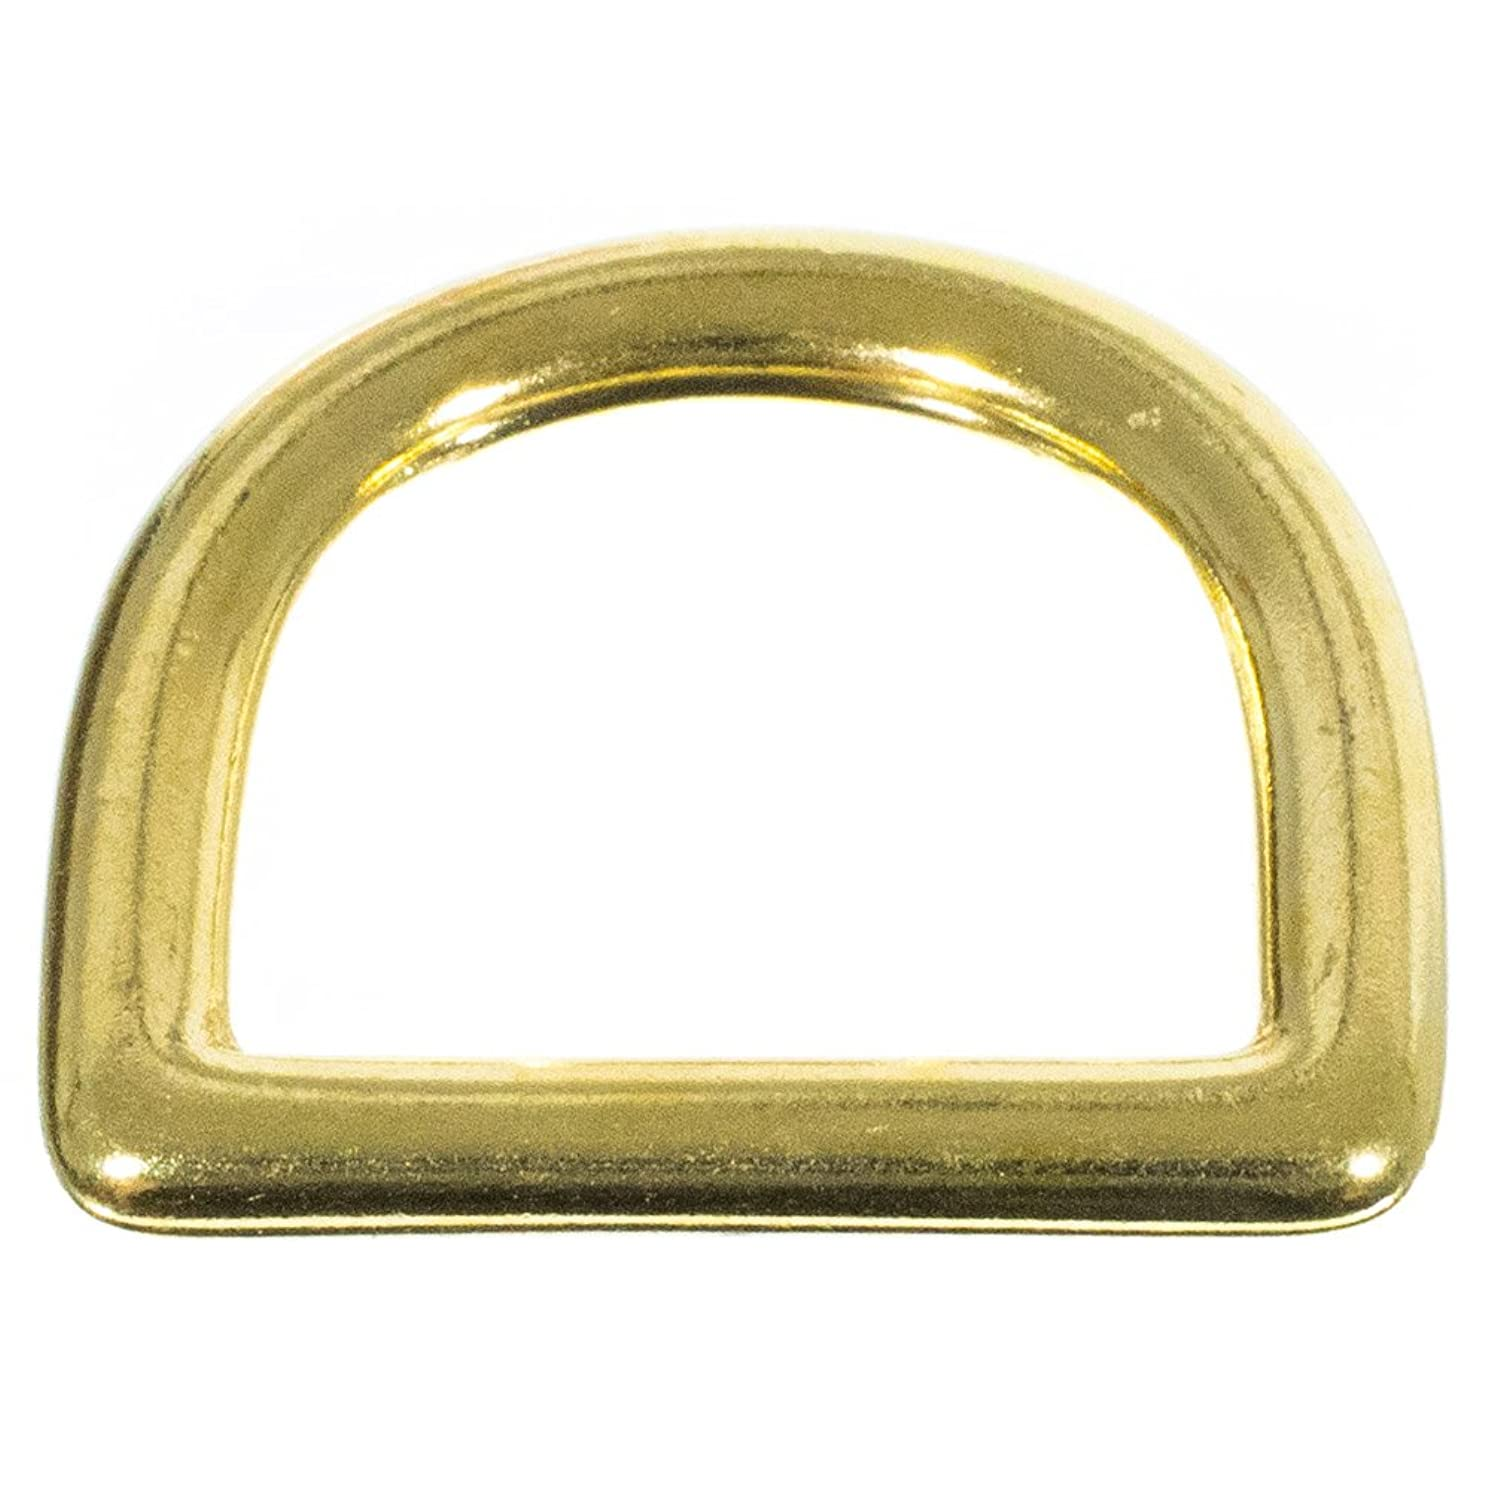 Craft County Brass D-Ring – 1 Inch (Inside) – Comes in Packs of 2, 5, 10, 15, 20 and 25 – DIY Crafting